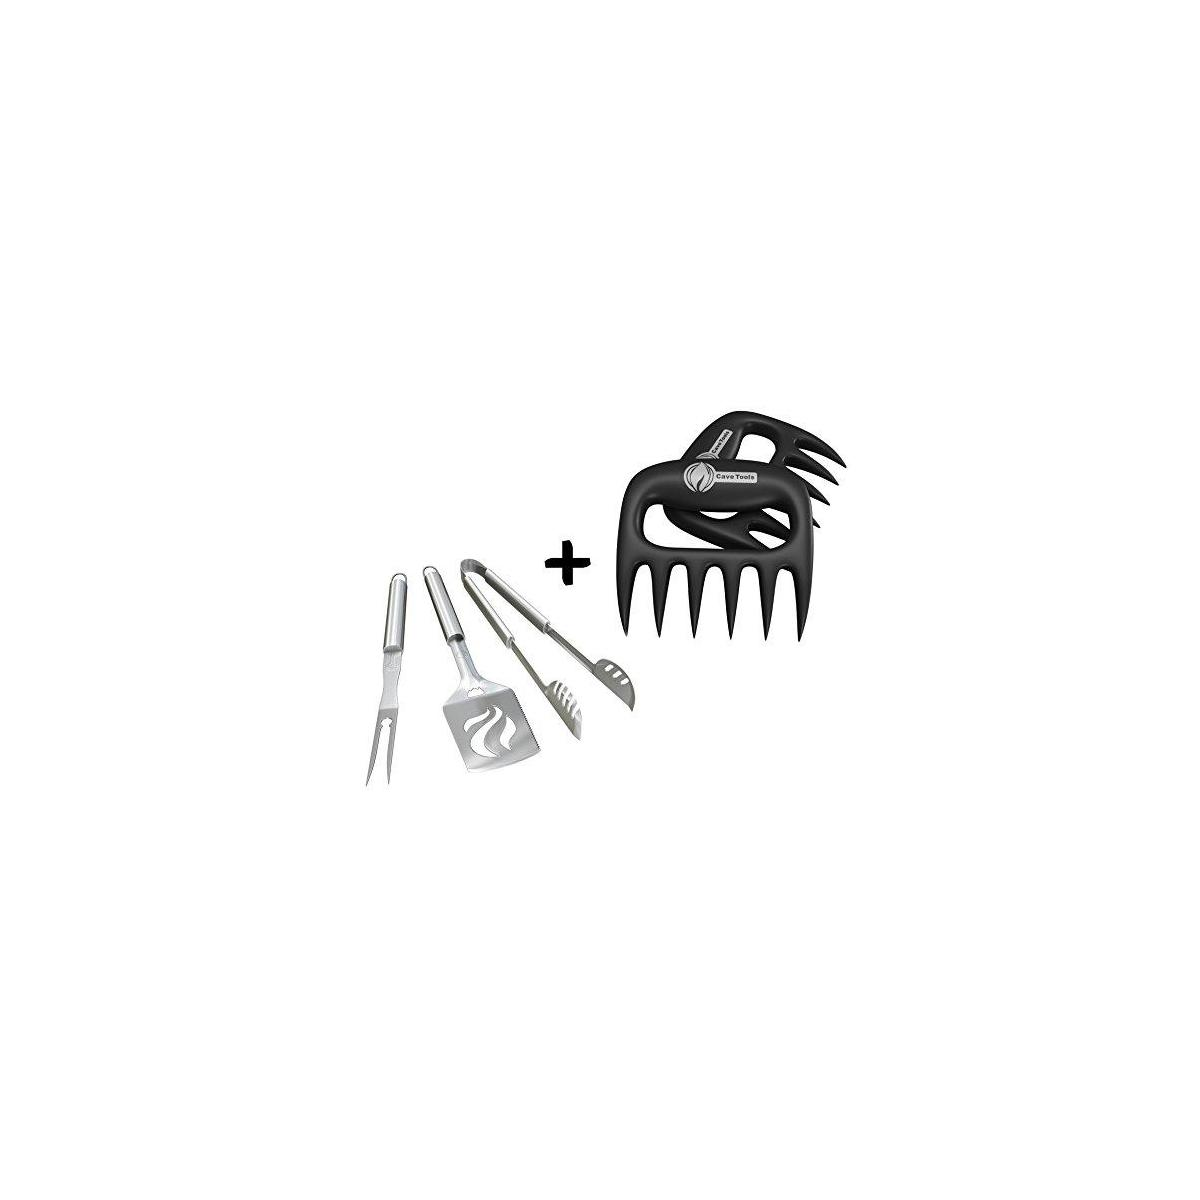 Grill Tools Set + Pulled Pork Shredder Claws - Strongest BBQ Meat Forks - Shredding Handling & Carving Food - Claw Handler Set for Pulling Brisket from Smoker or Slow Cooker - BPA Free Barbecue Paws